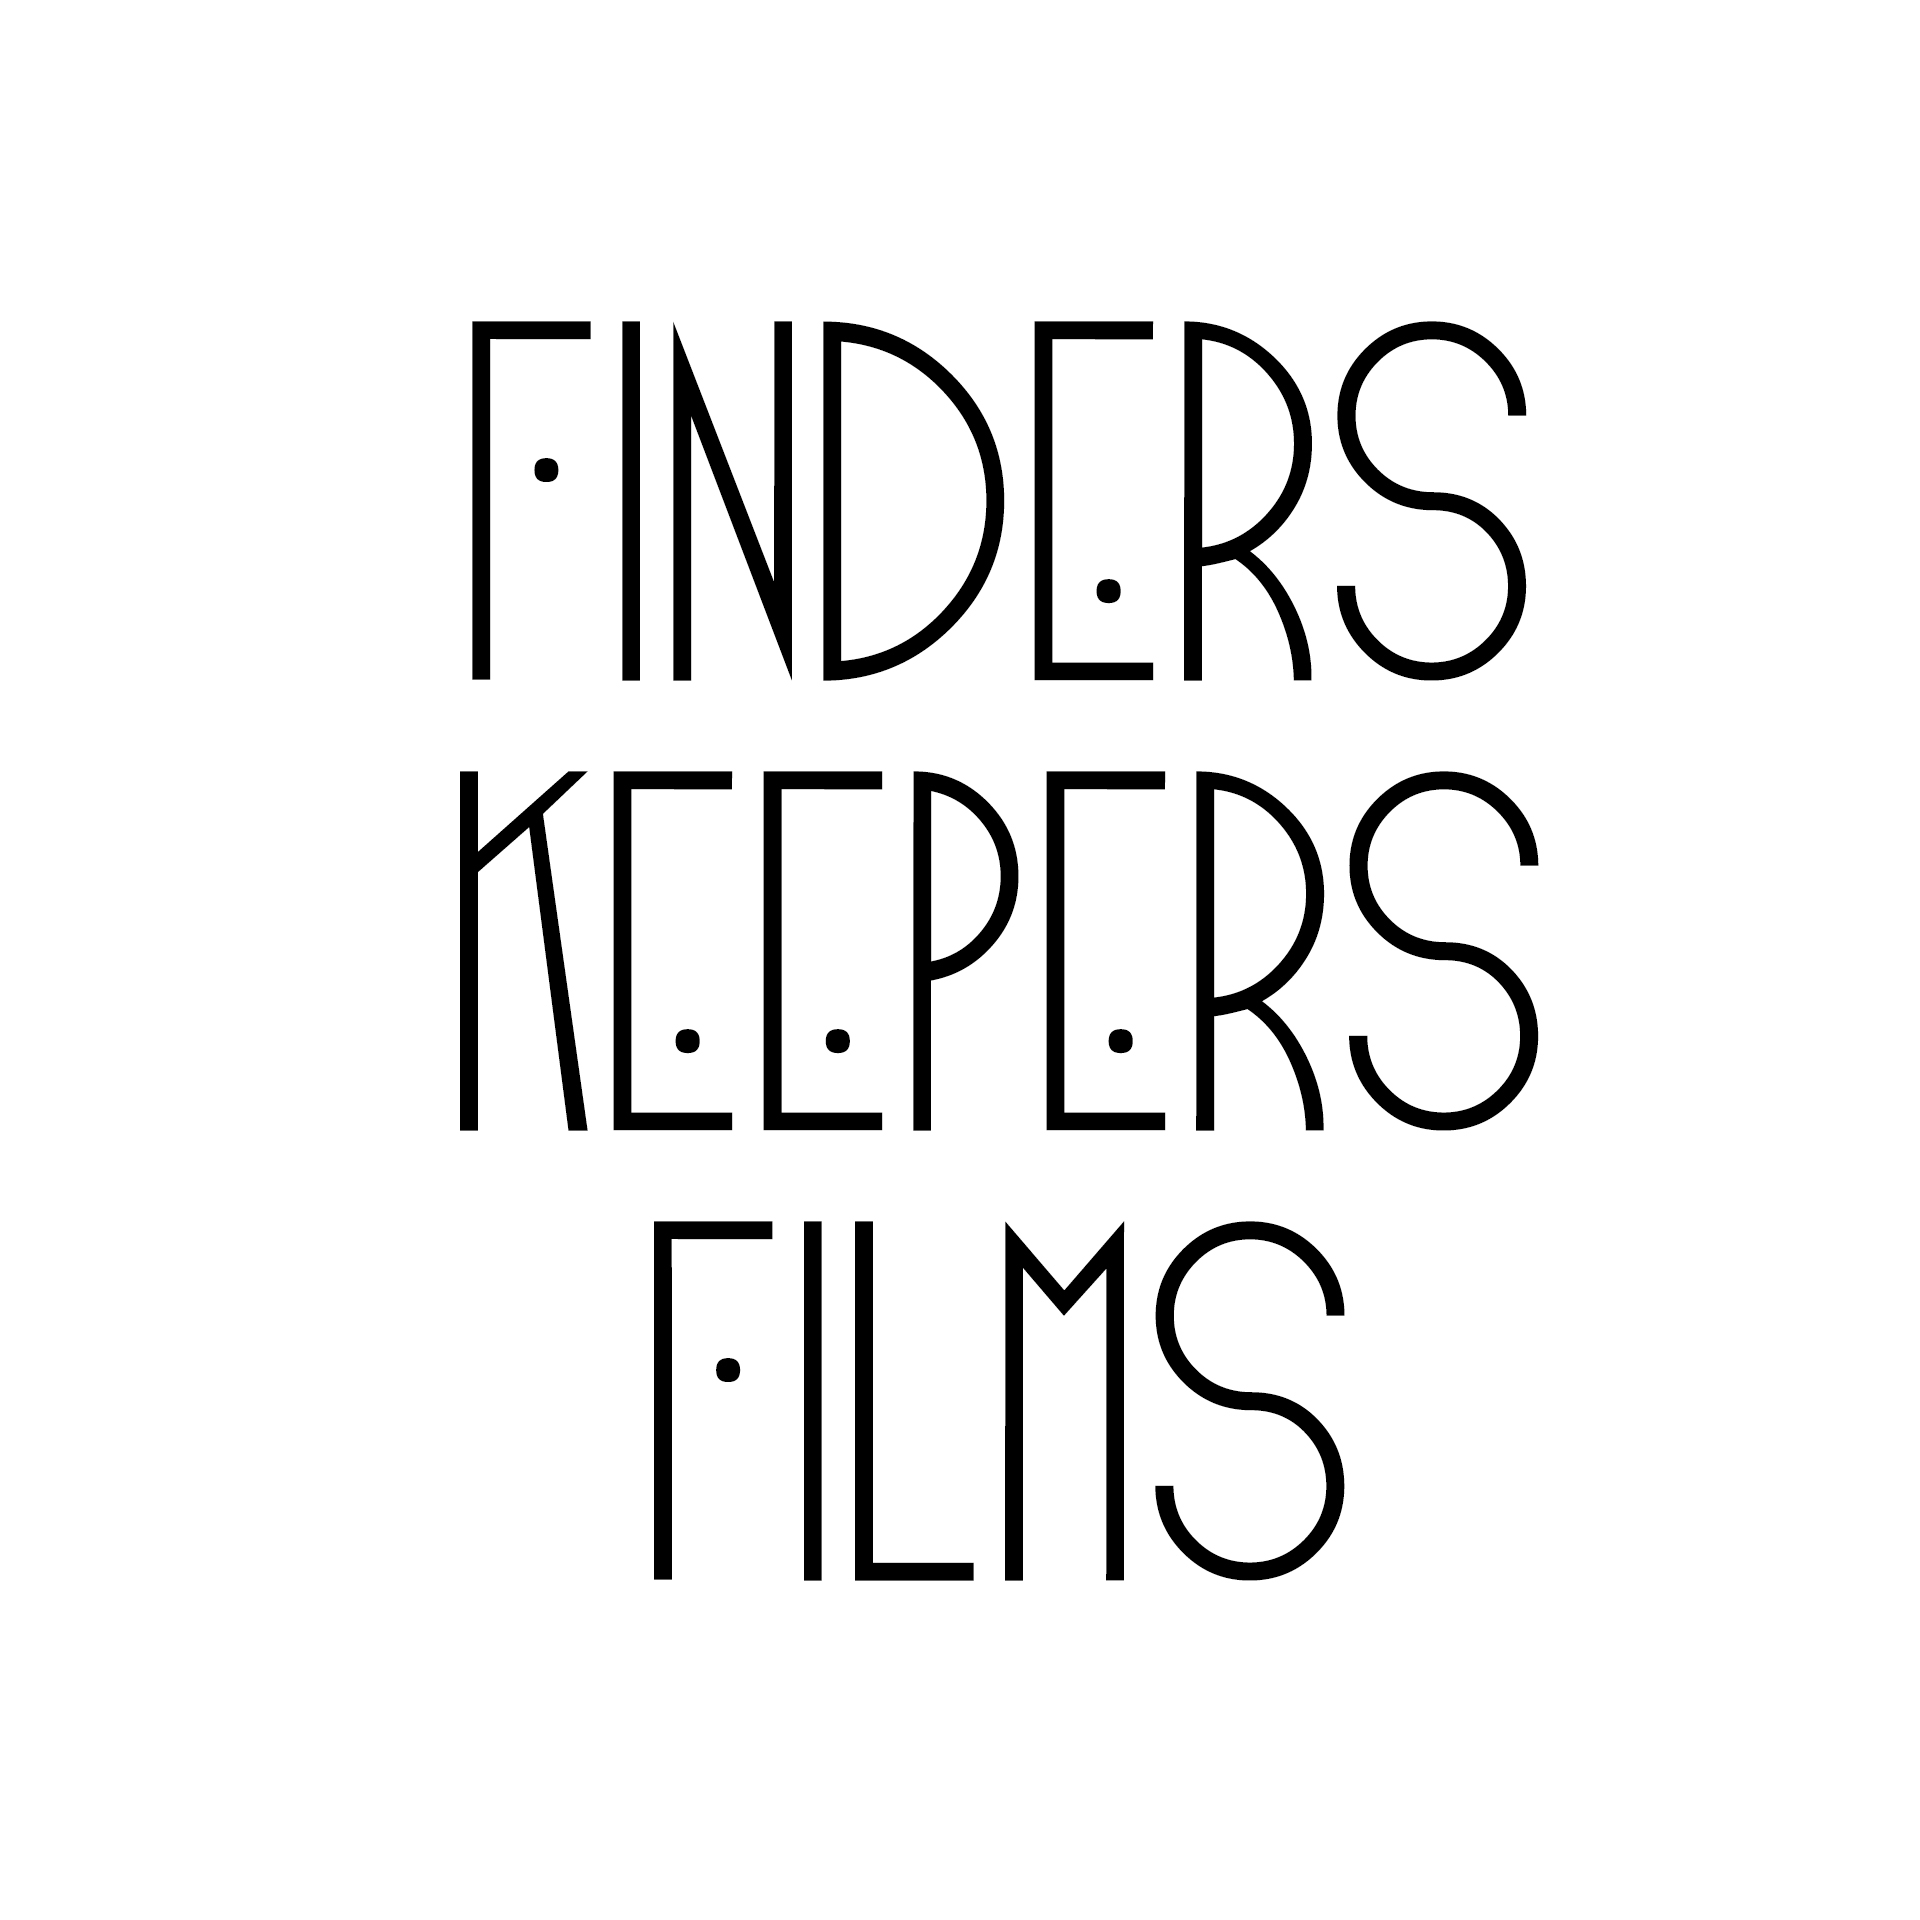 FINDERS KEEPERS FILMS